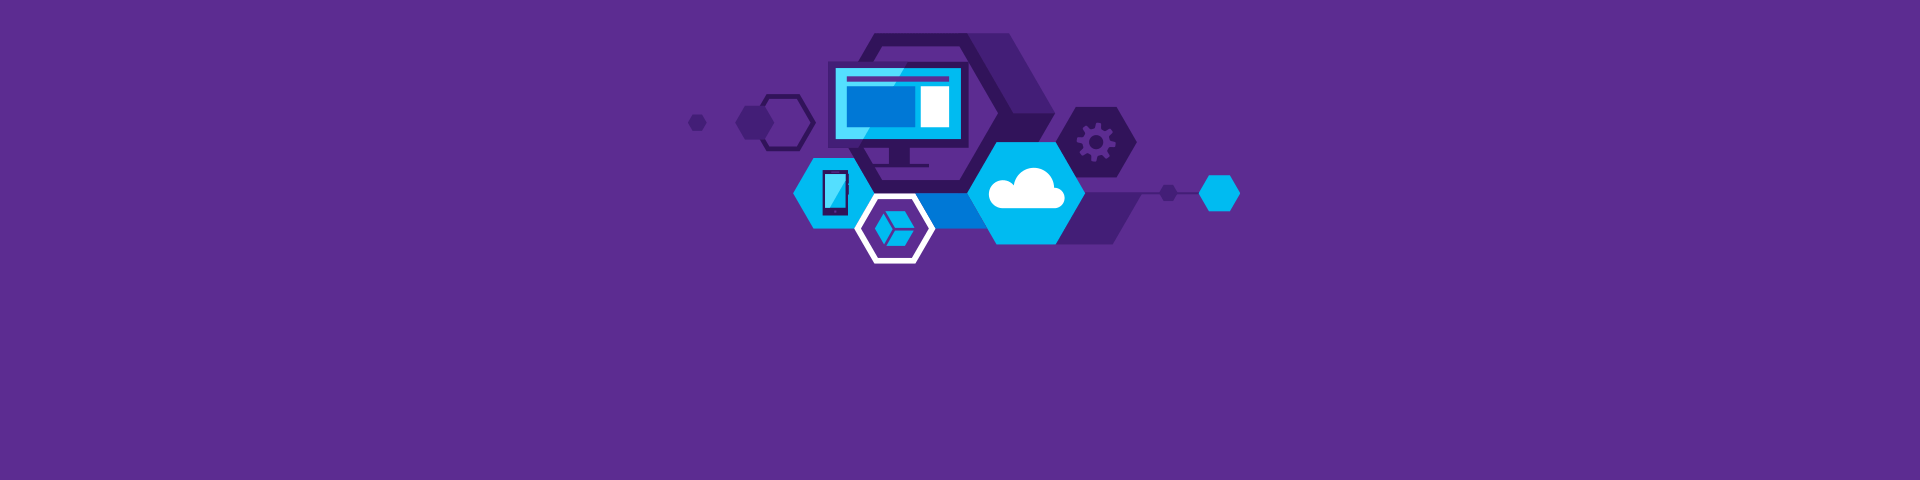 PC, phone, cloud, and other tech icons